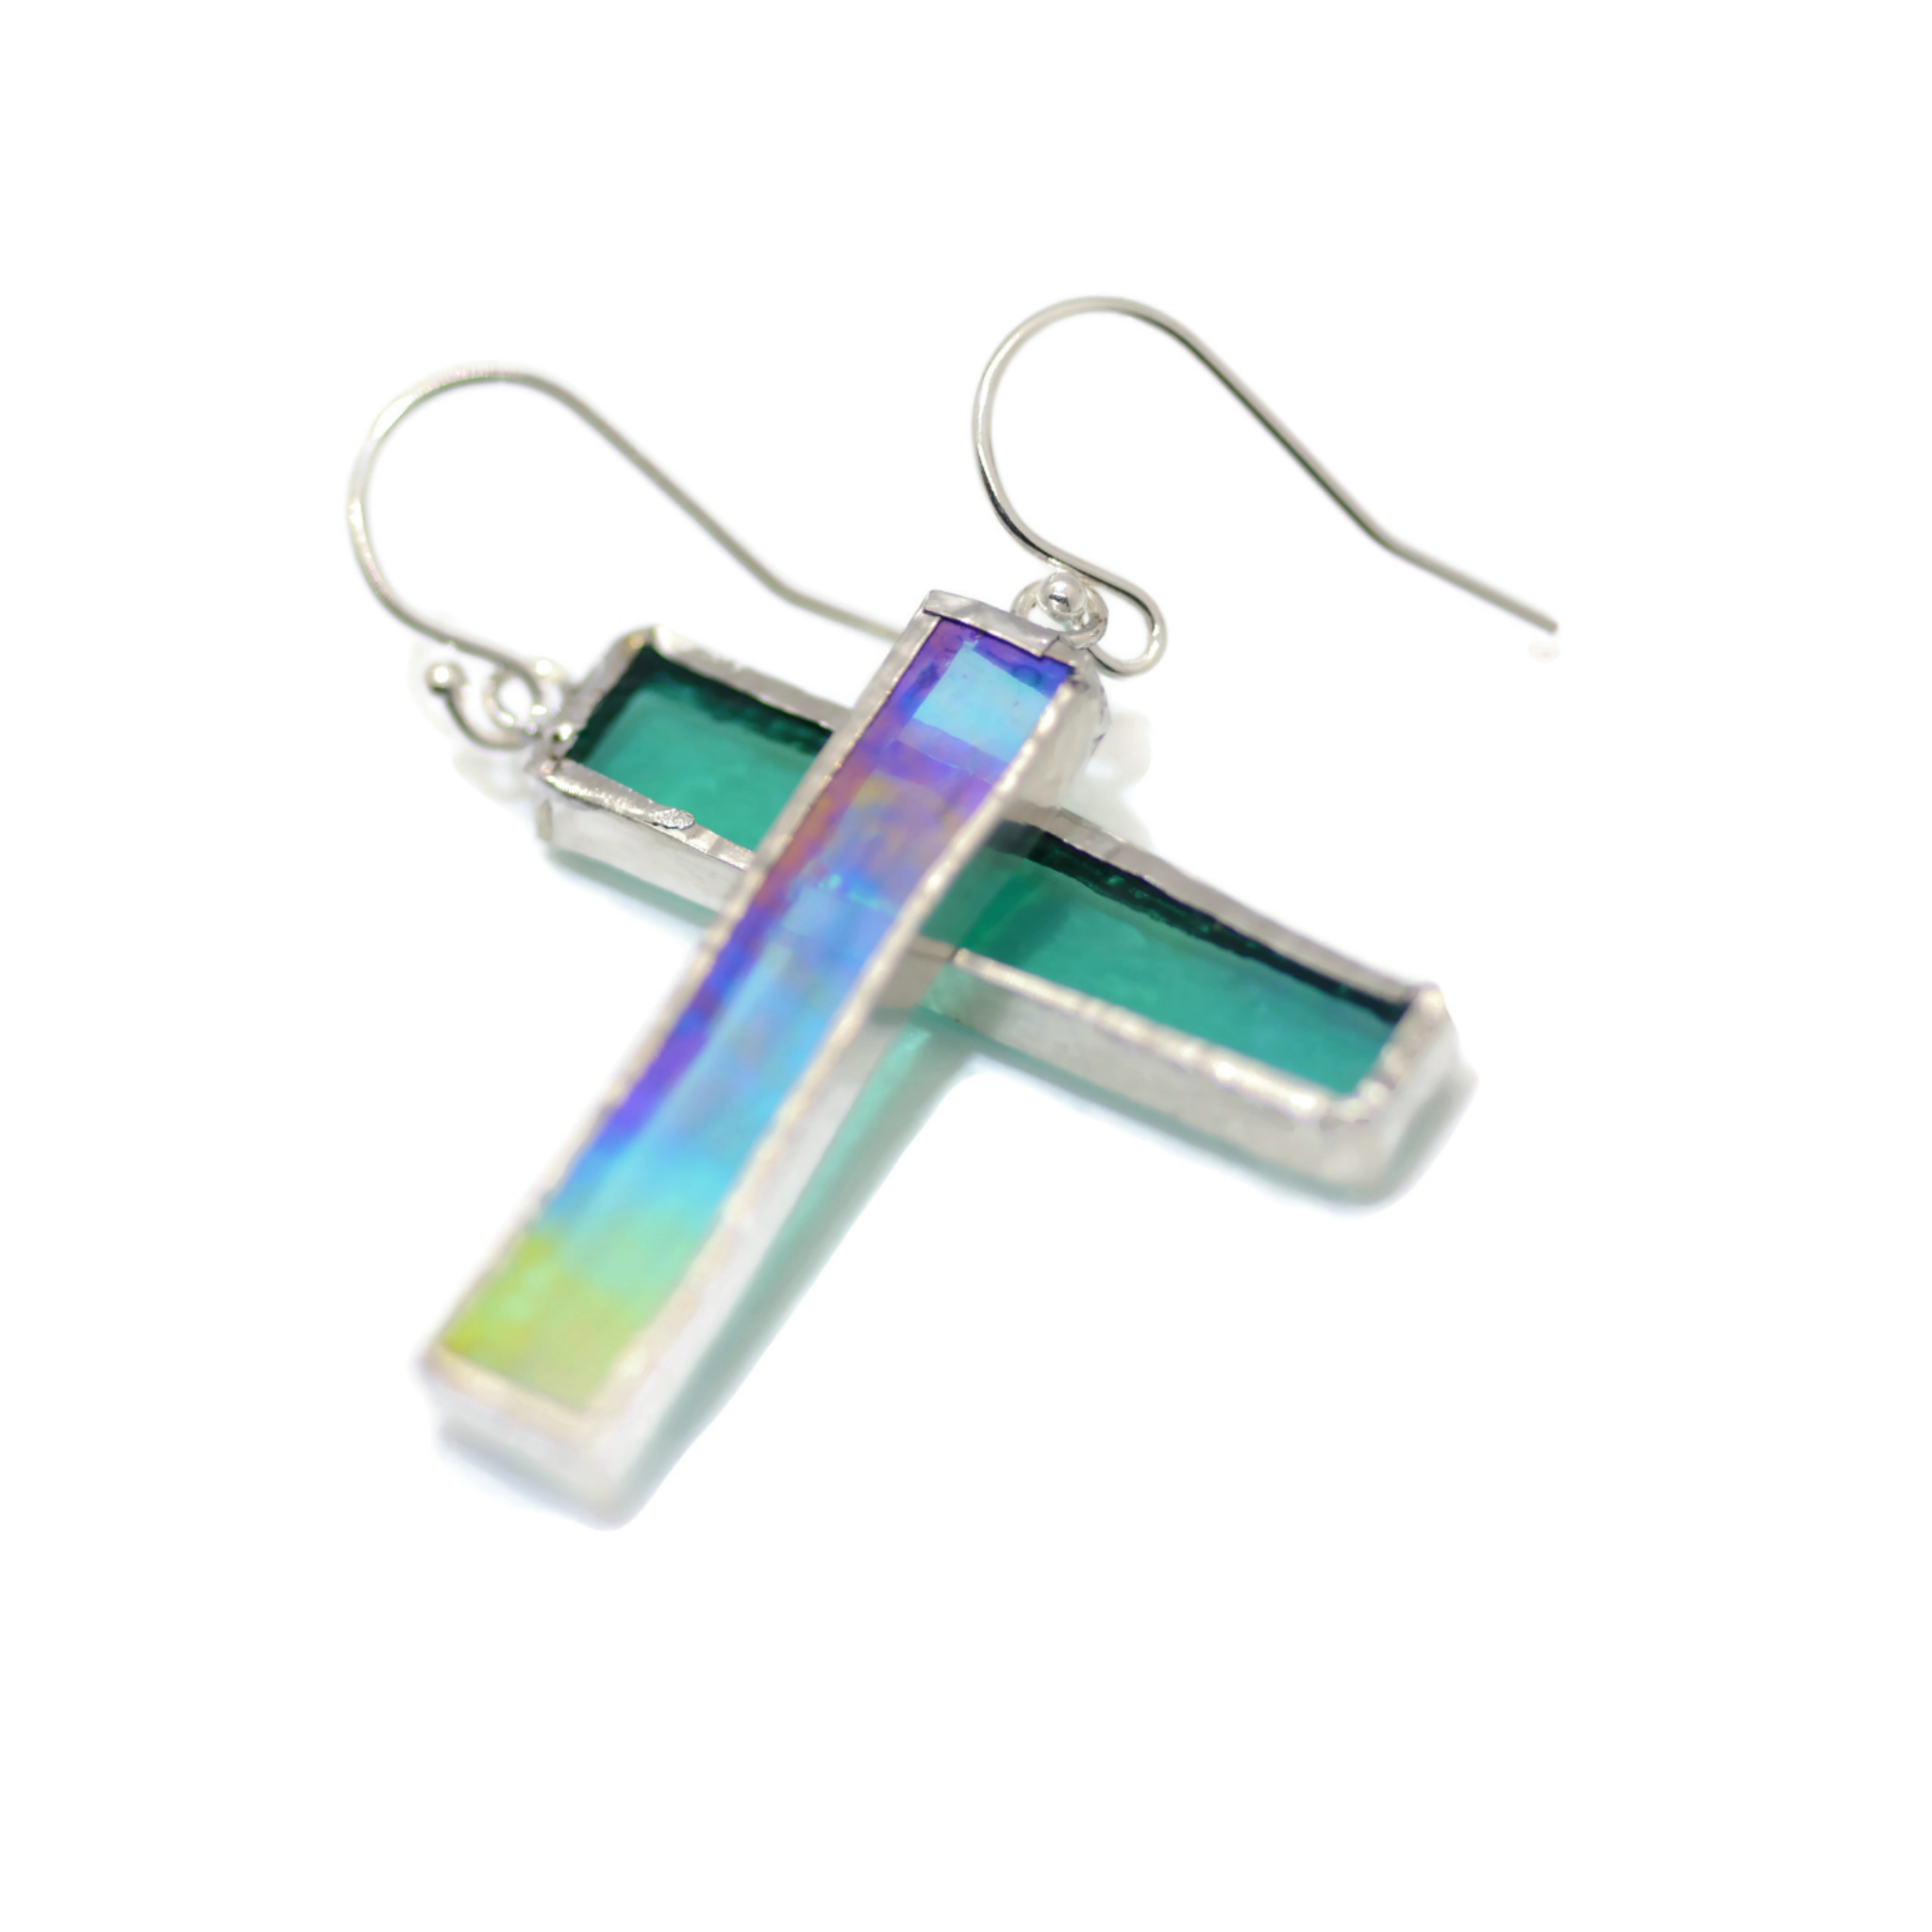 Turquoise Irridized Glass Earrings